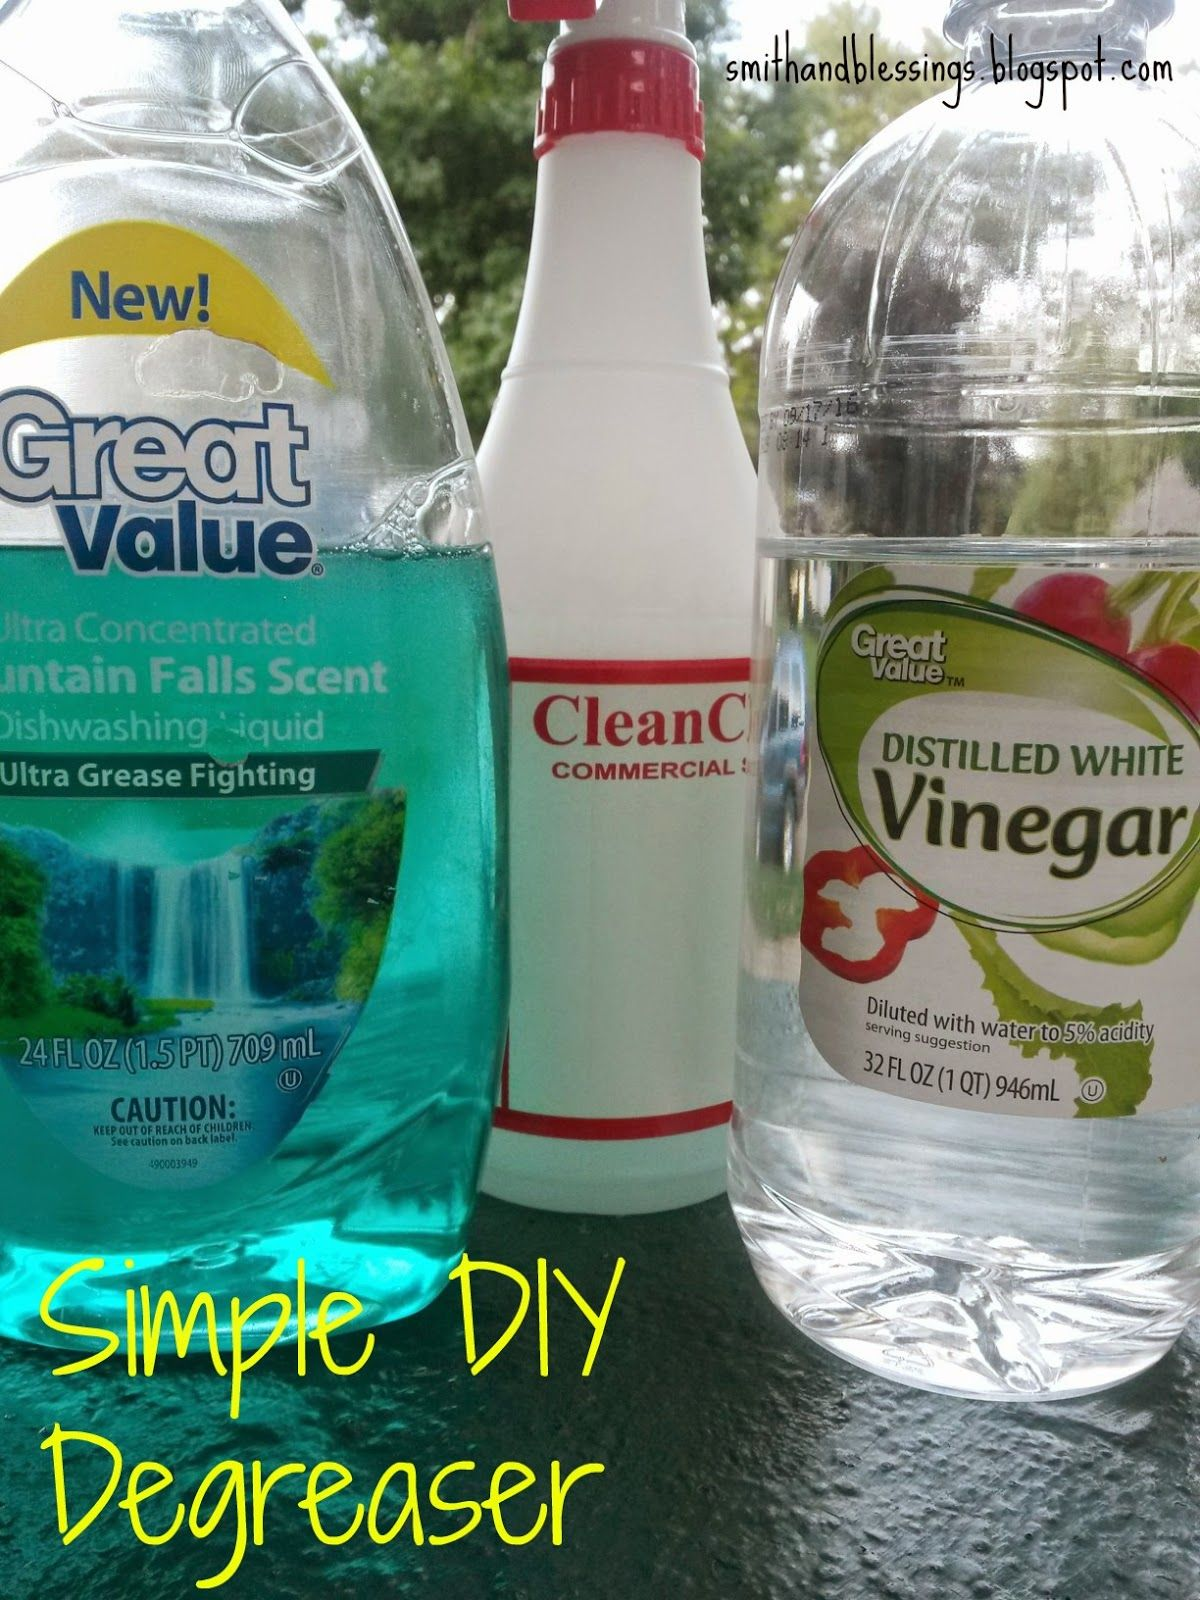 Smith and blessings messy monday simple diy degreaser ideas for